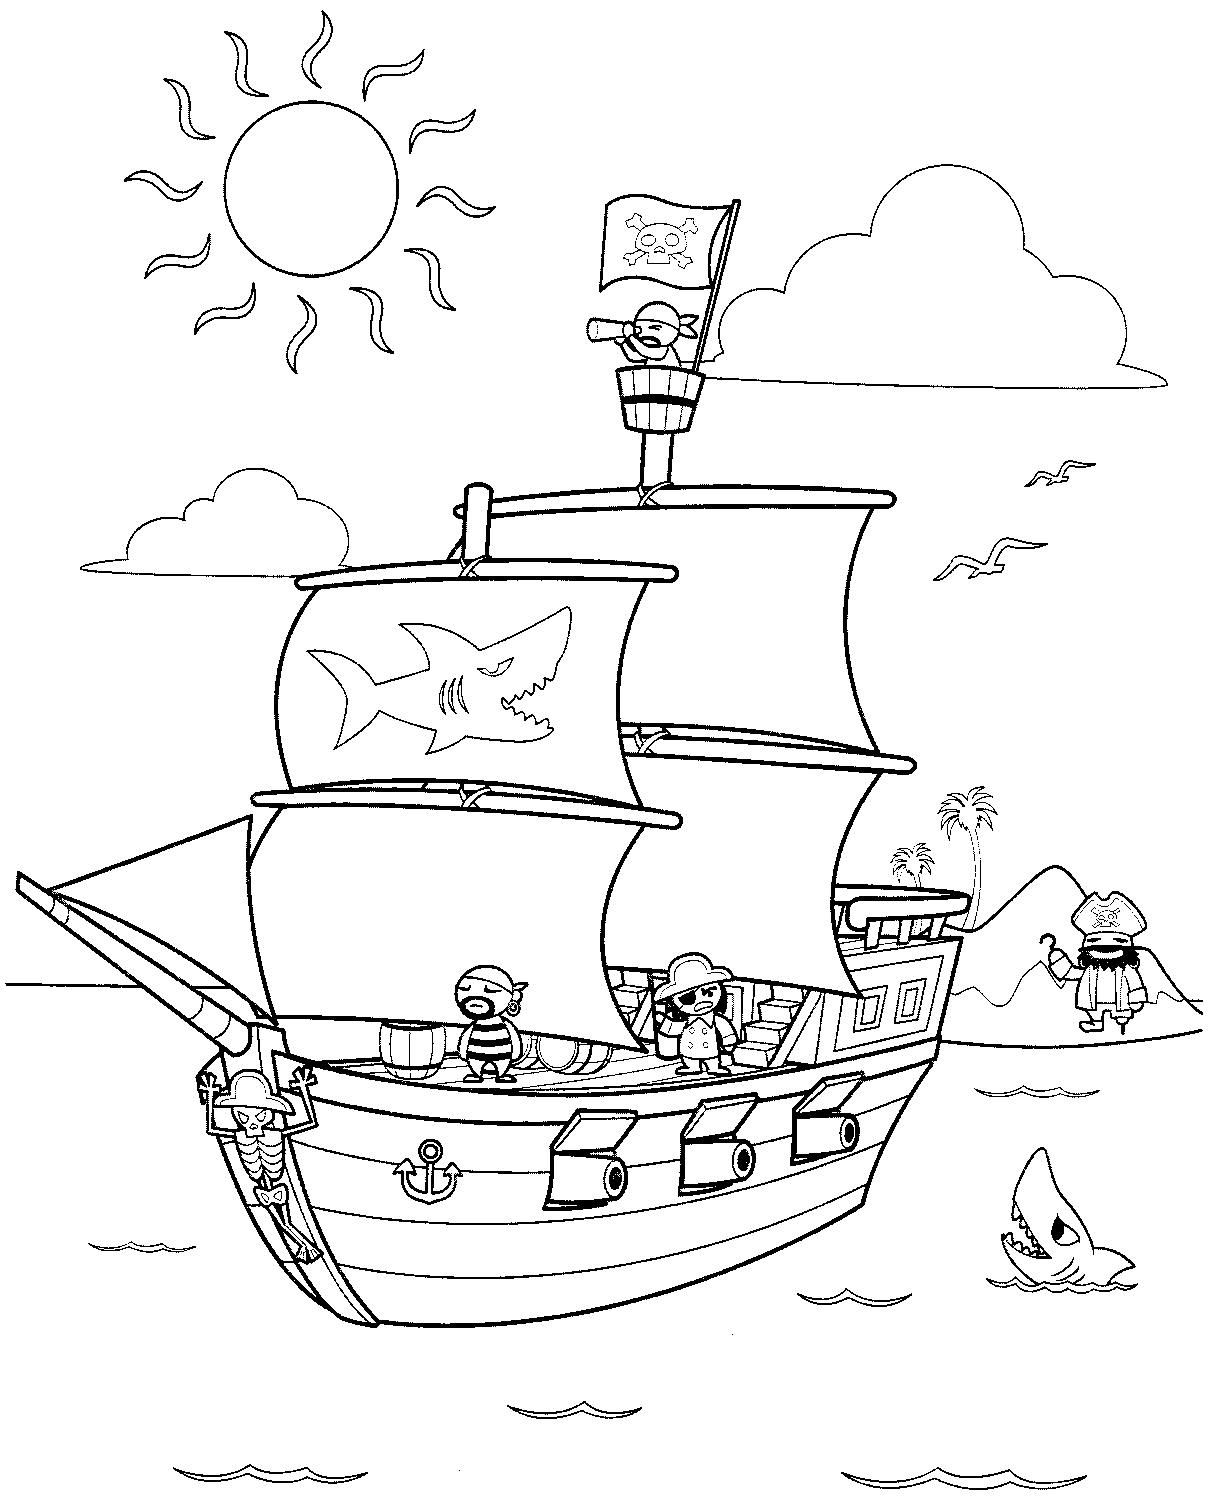 Pirate Coloring Pages Pagine Da Colorare Nave Pirata Pirati